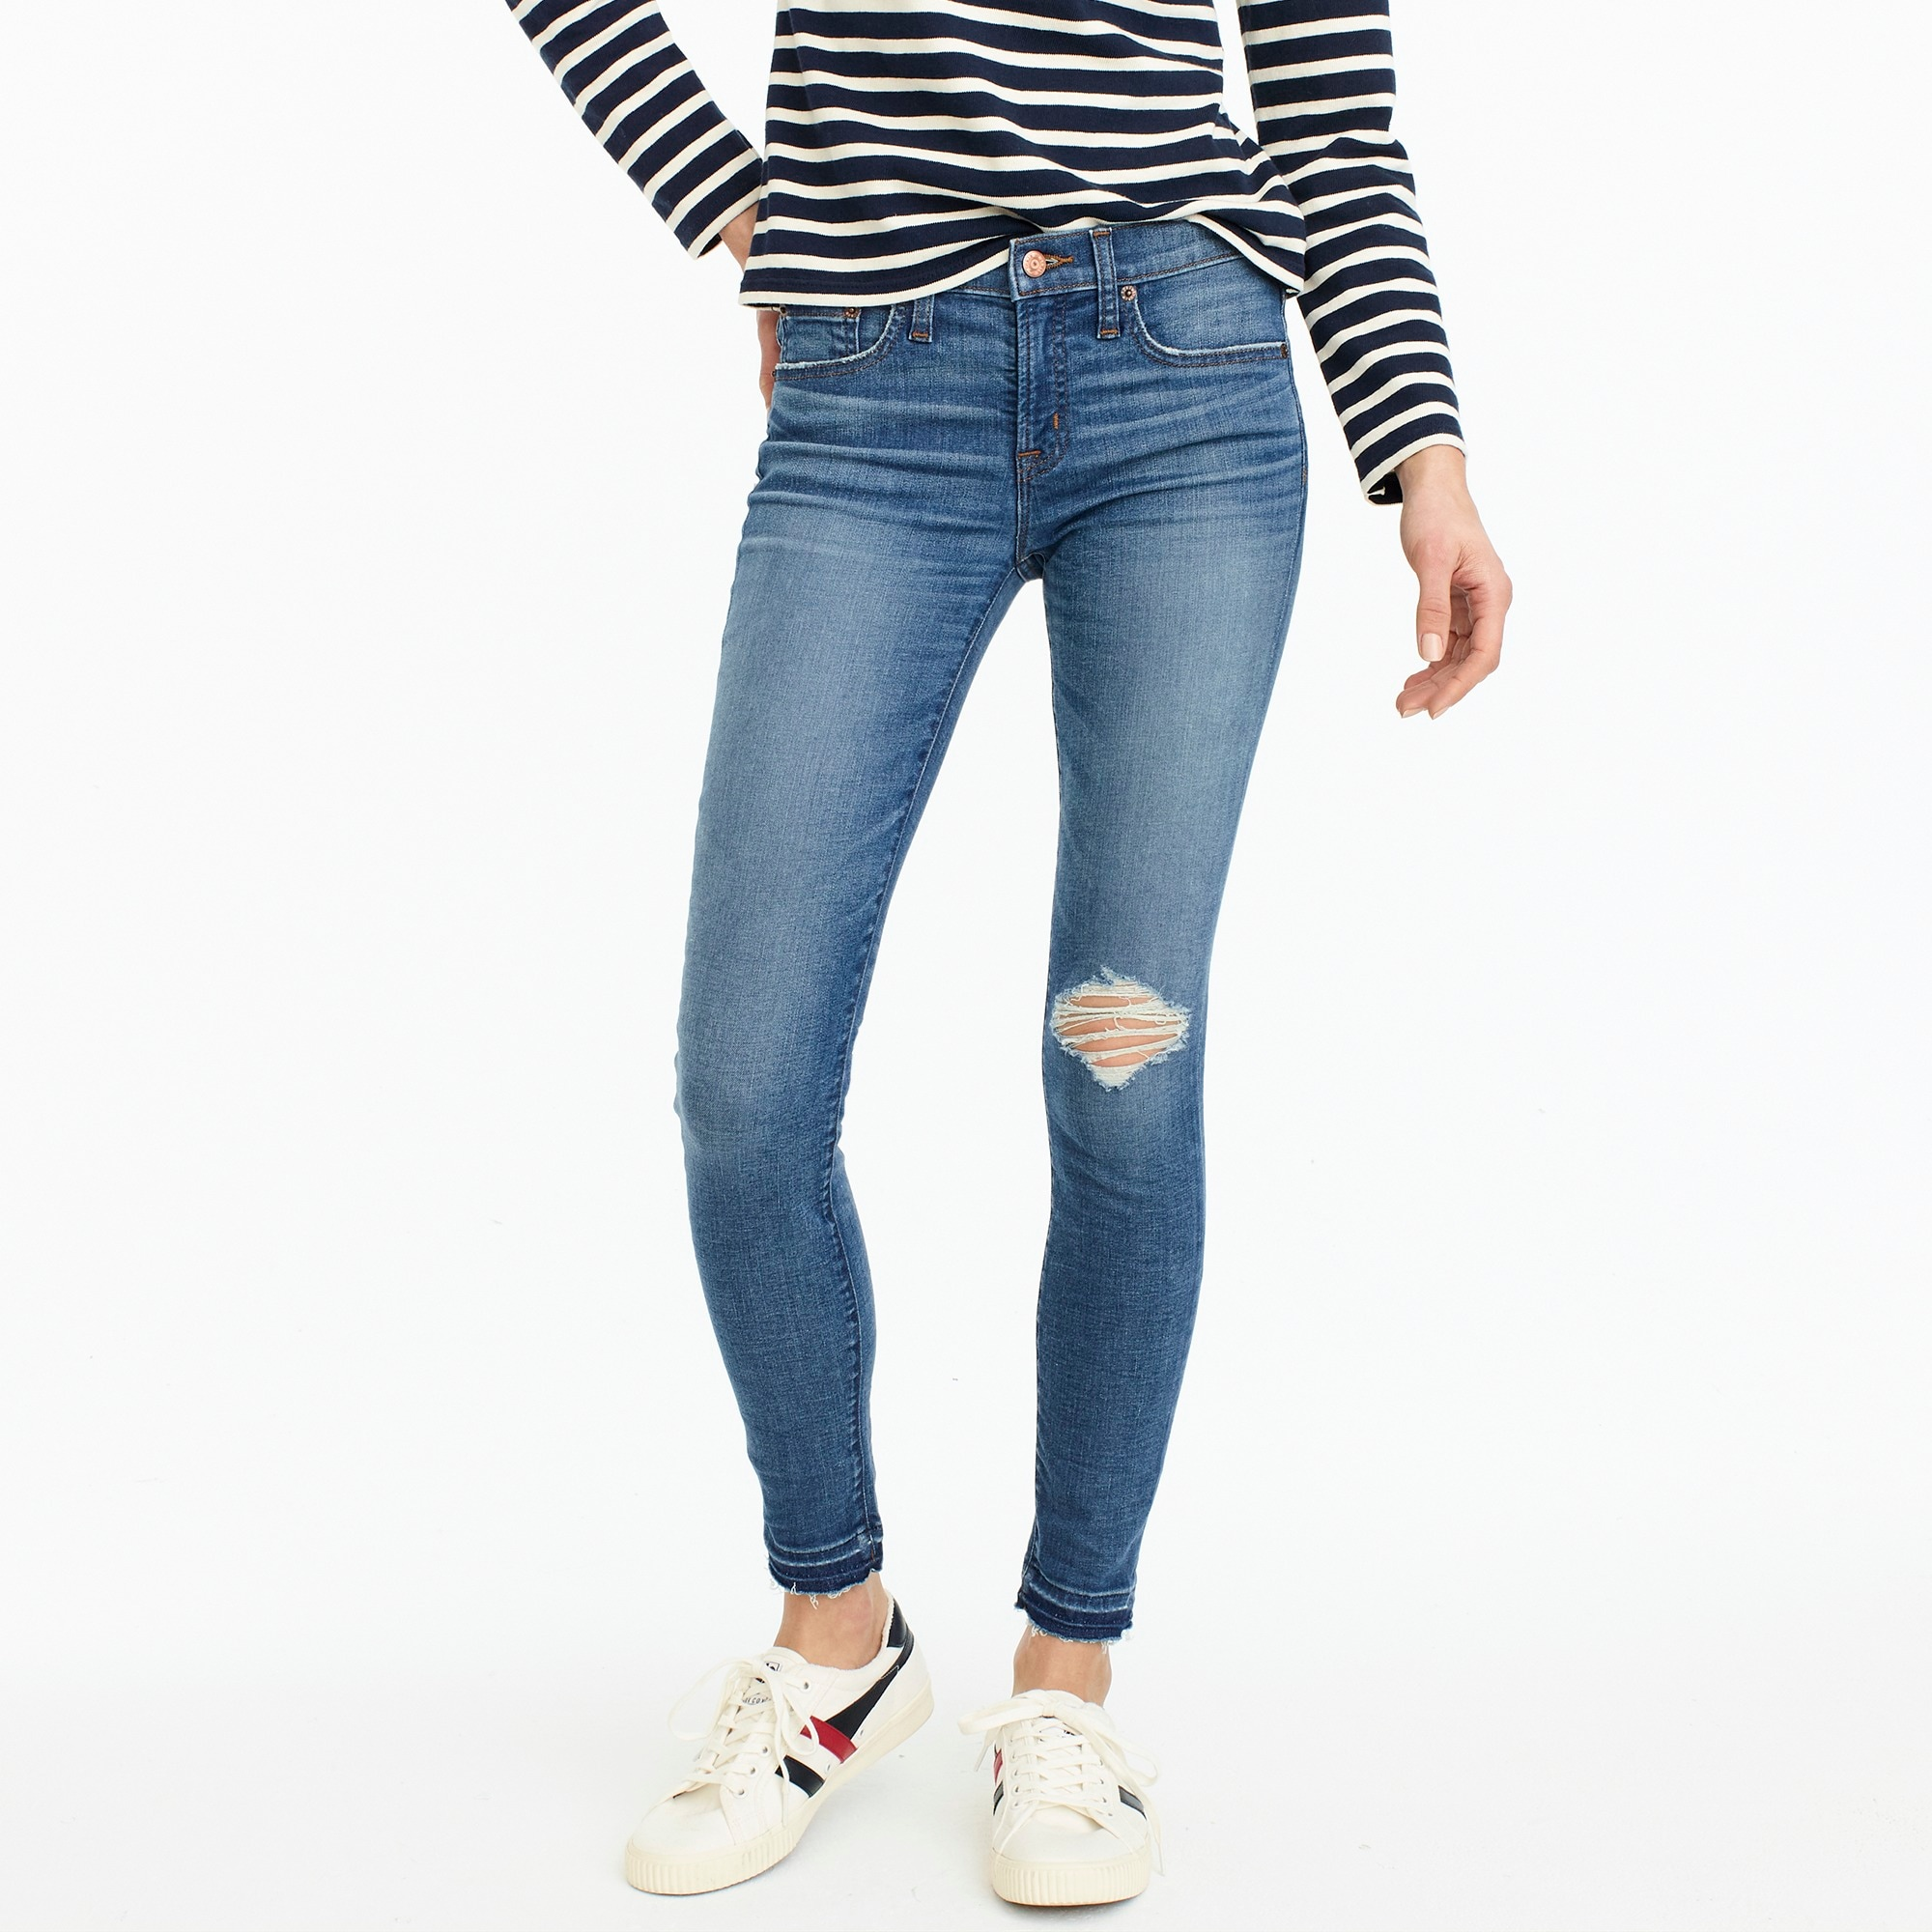 women's tall 8 toothpick jean in newcastle wash with let-down hem - women's jeans